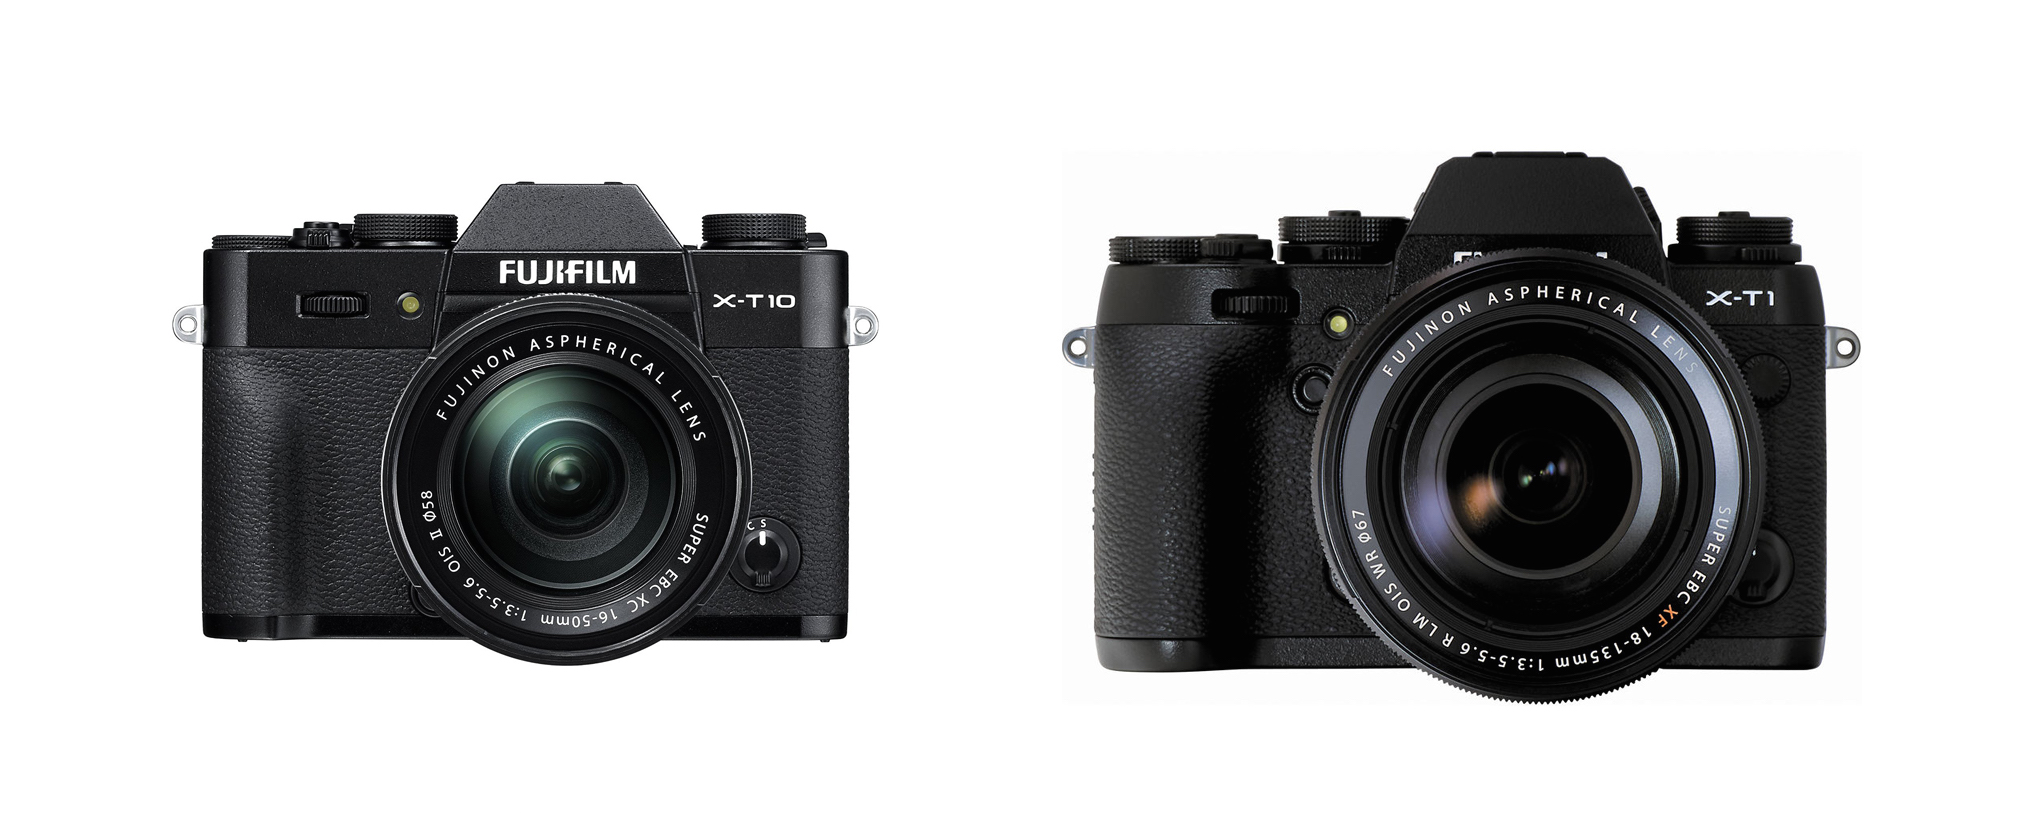 fujifilm-released-x-t1-firmware-v4-3-and-x-t10-firmware-v1-20